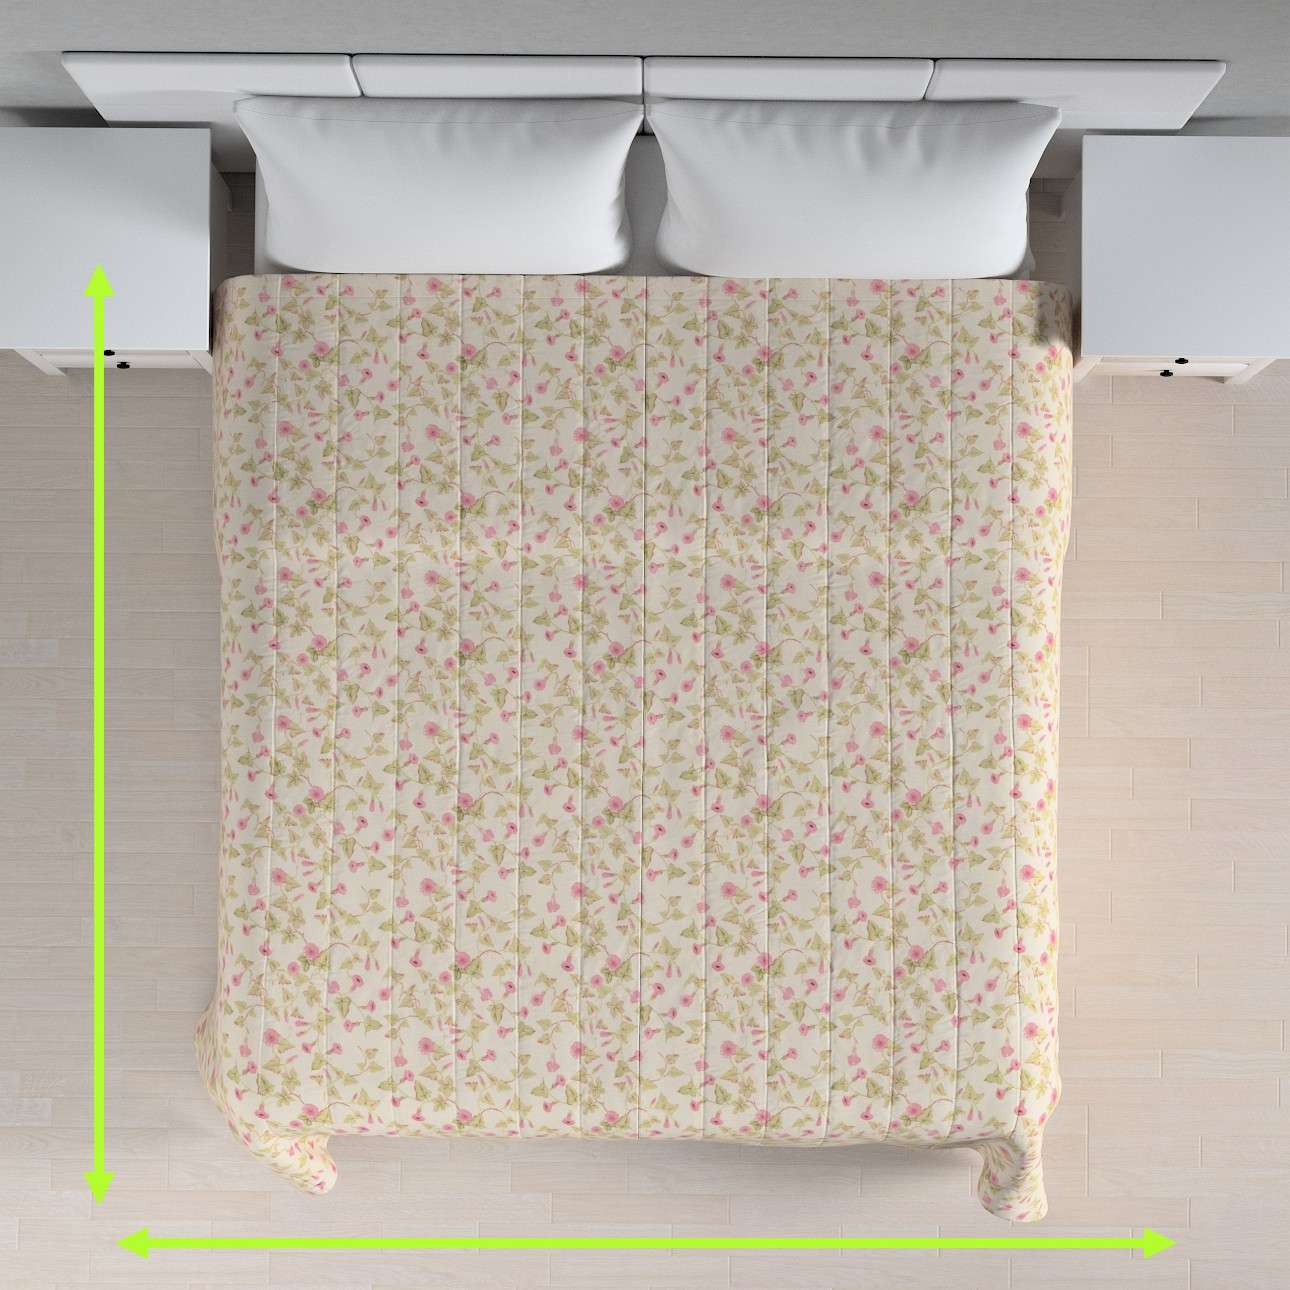 Quilted throw (vertical quilt pattern) in collection Mirella, fabric: 140-41